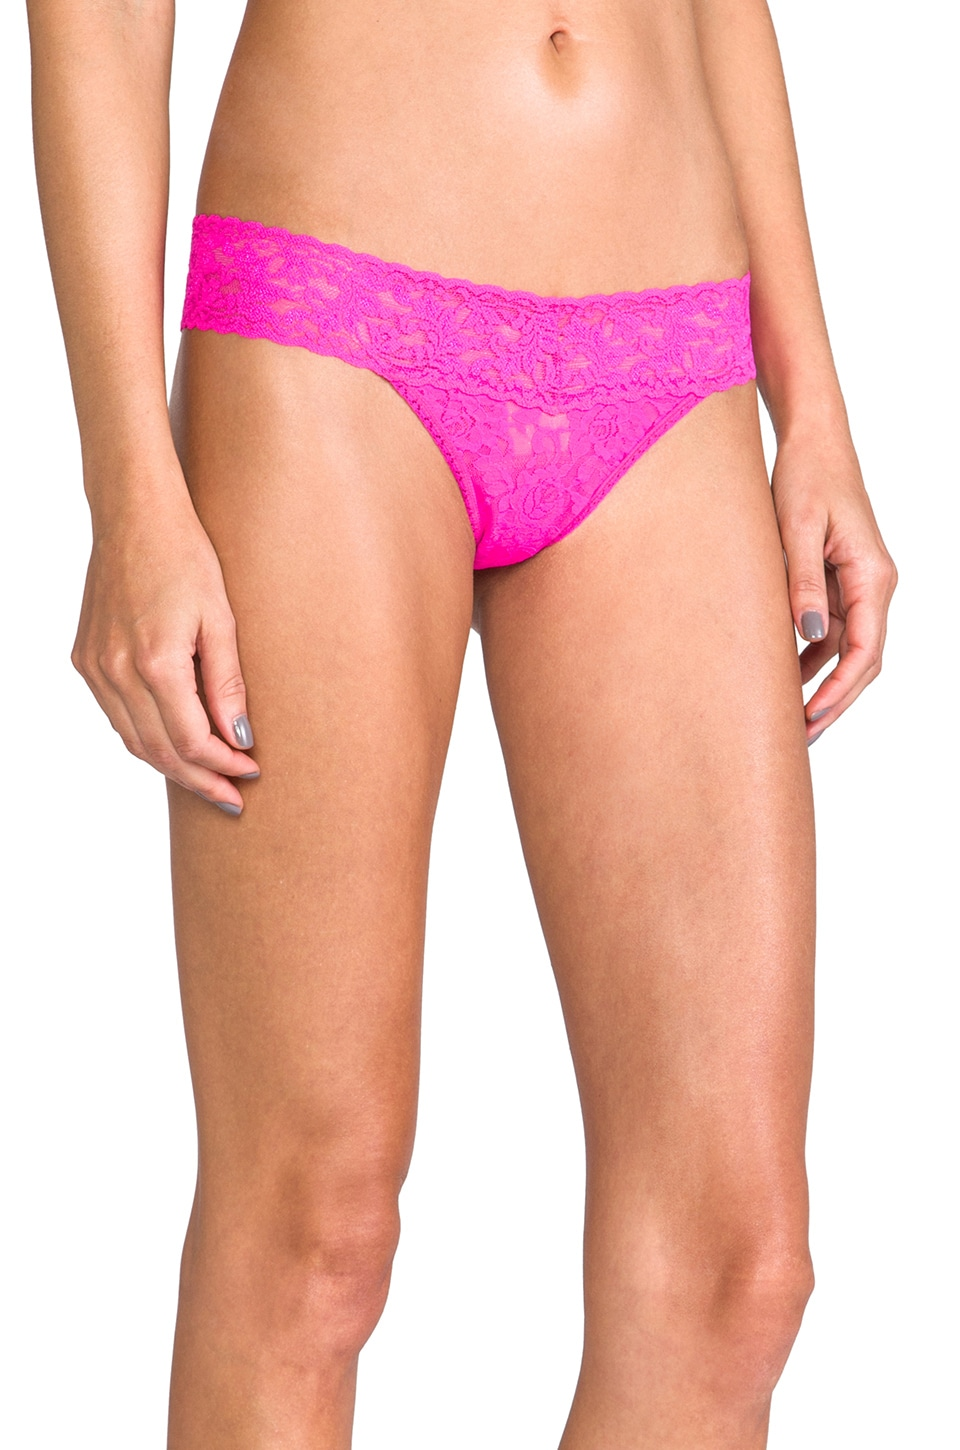 Hanky Panky Low Rise Thong in Passionate Pink